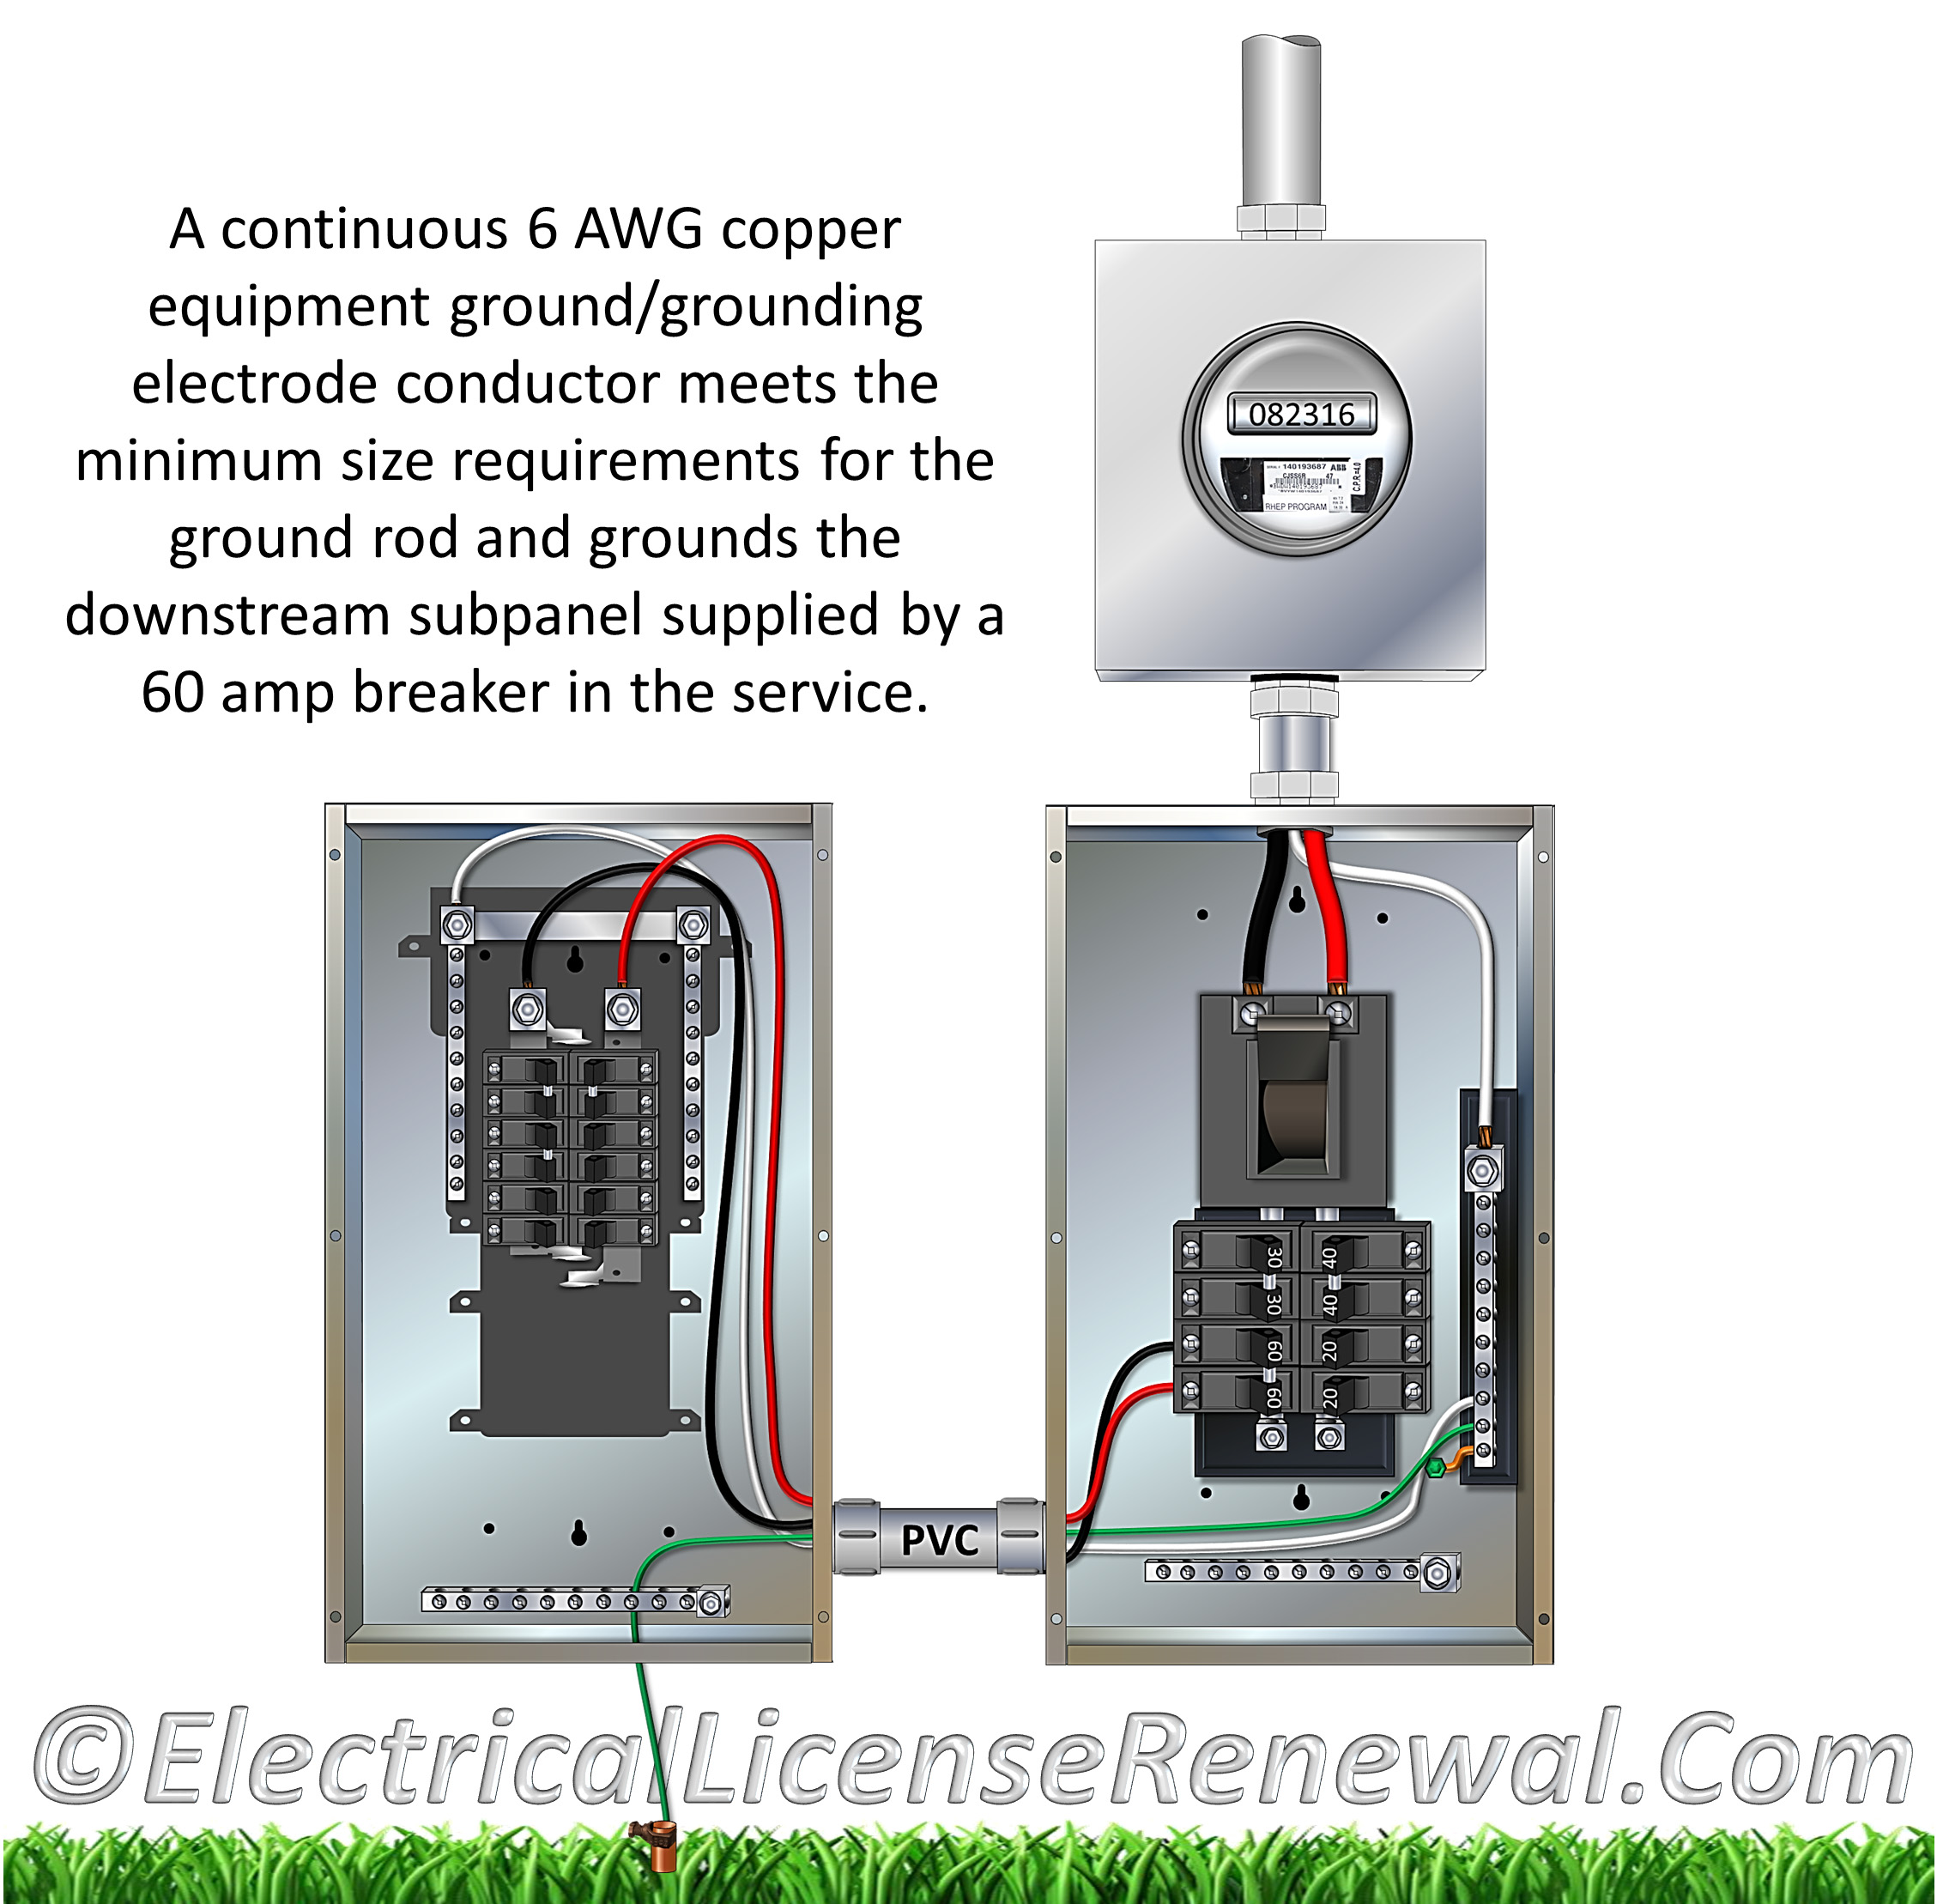 250.121 Use of Equipment Grounding Conductors.